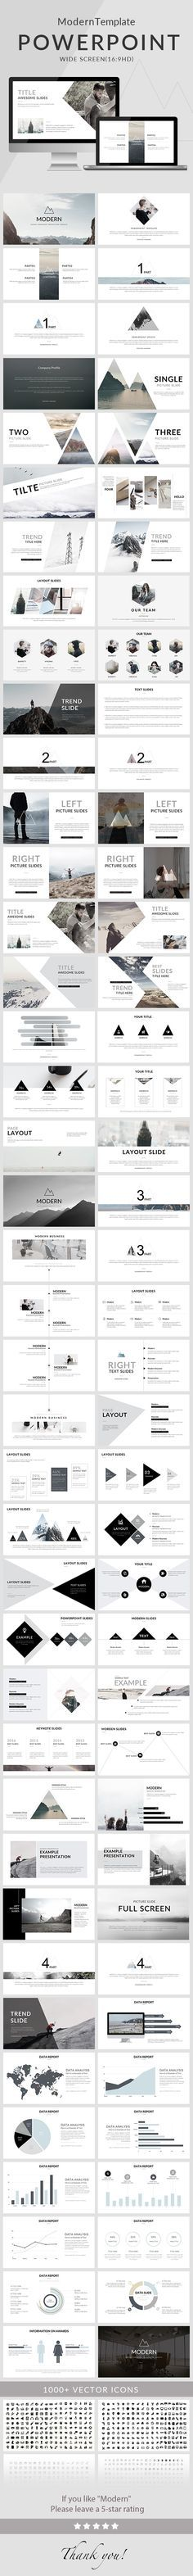 Nice and clean modern PowerPoint presentation template for creative presentations. 80 slides to emphasize the key points of the presentation and create a great impression on the viewers. Graphisches Design, Slide Design, Layout Design, Interior Design, Book Design, Design Model, Cover Design, Creative Design, Powerpoint Design